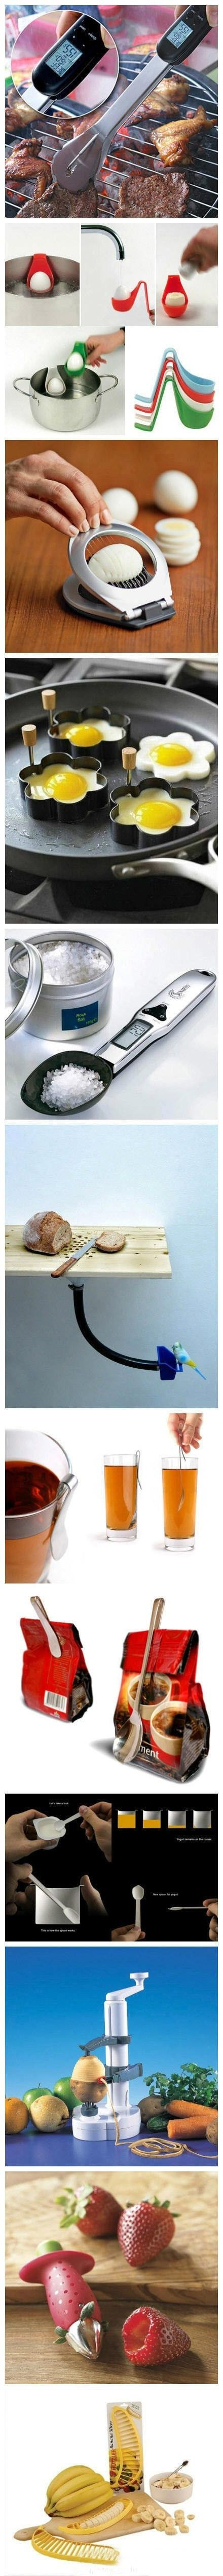 Find More Useful Kitchen Gadgets at: http://coolkitchengadgets.net/category/useful/